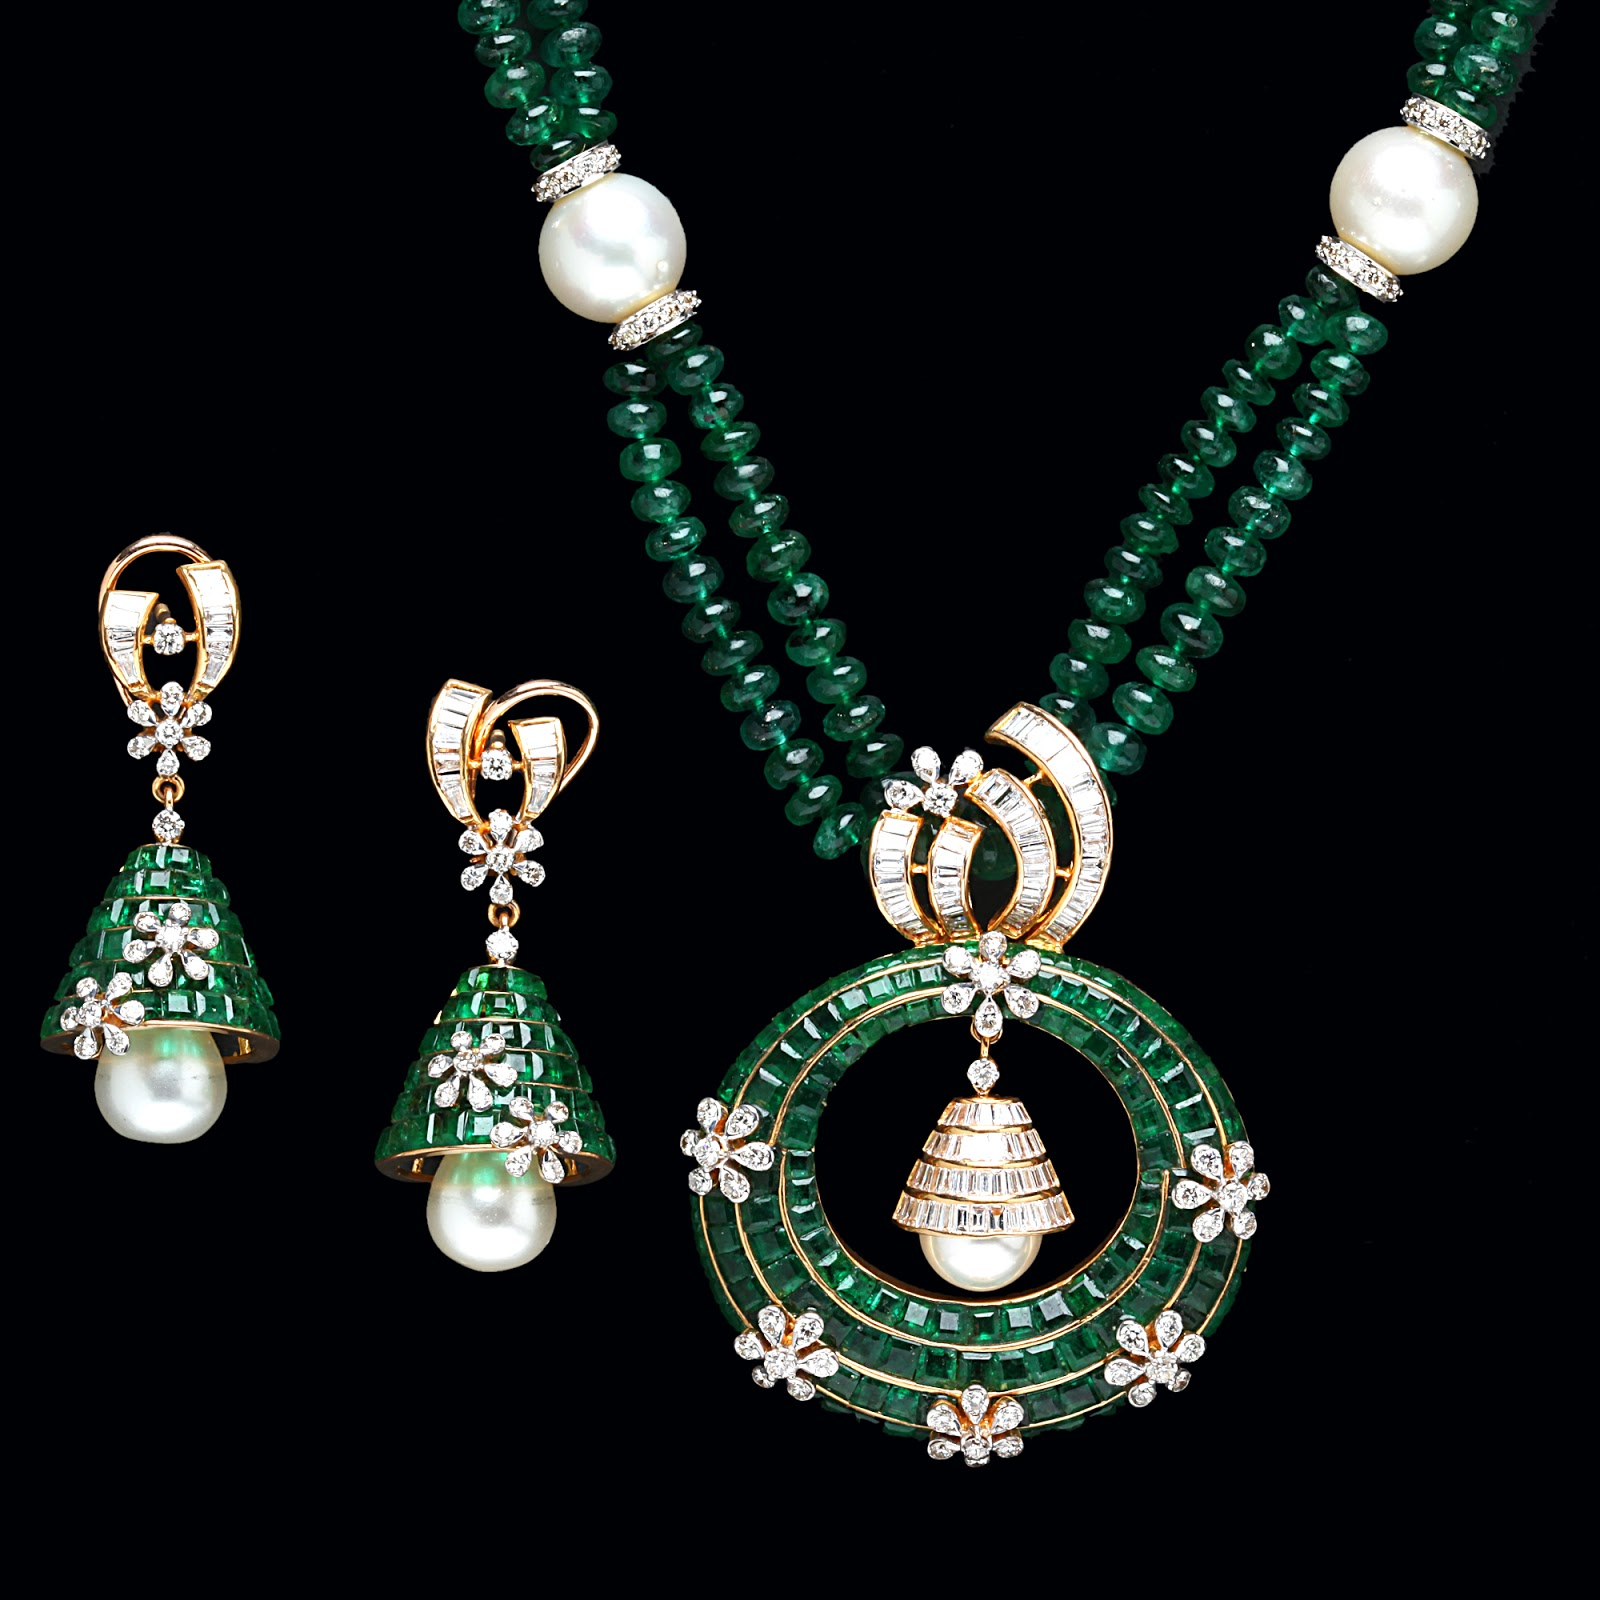 Indian Jewellery And Clothing: Indian Jewellery And Clothing: April 2013